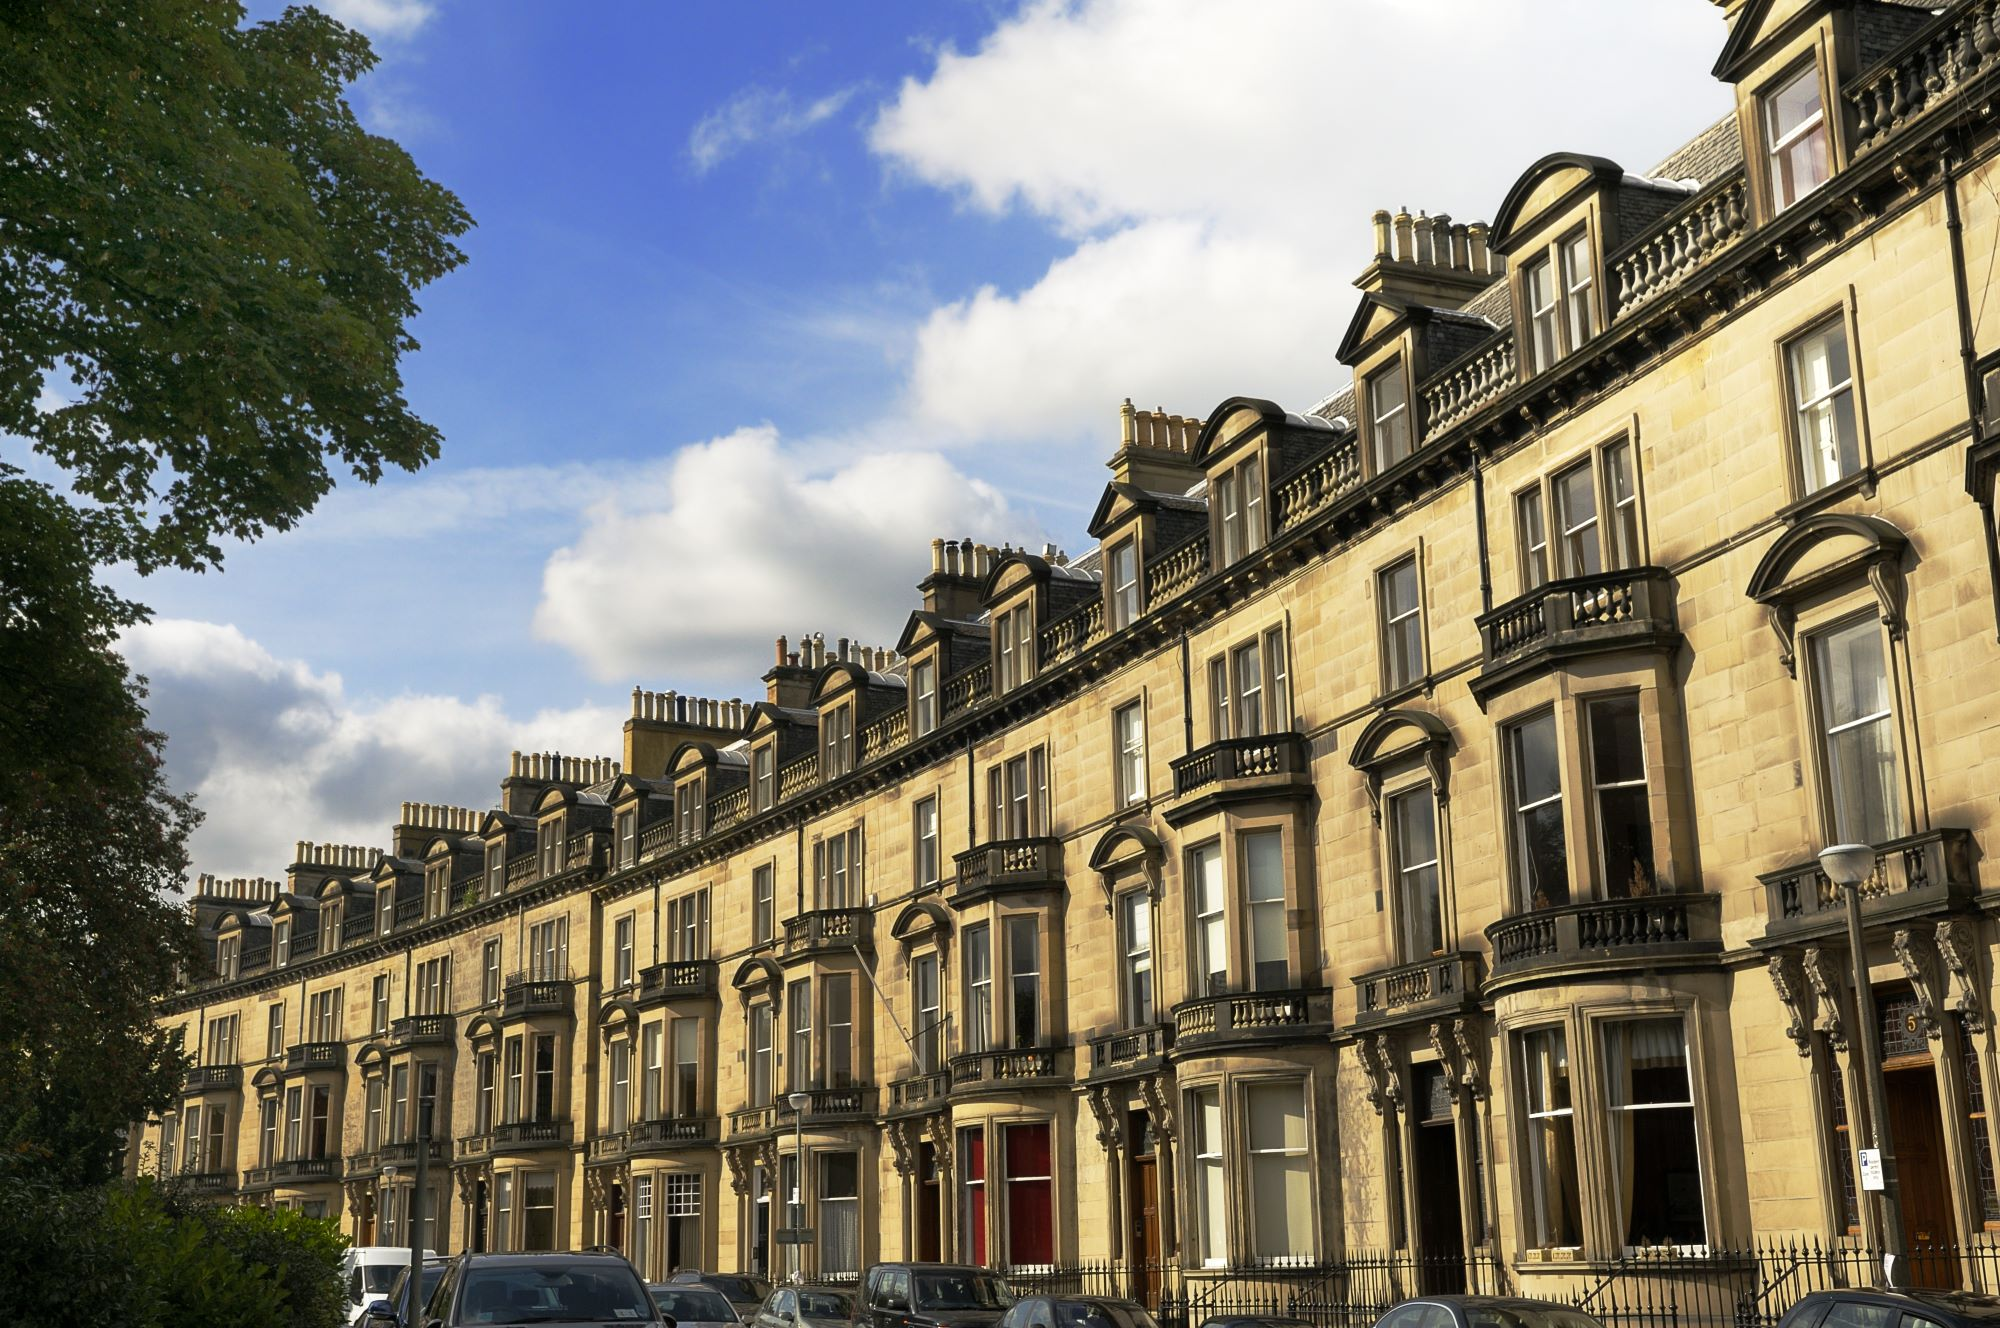 Edinburgh takes second place thanks to its rent controls and relatively low crime rate. Image: StockCube/Shutterstock